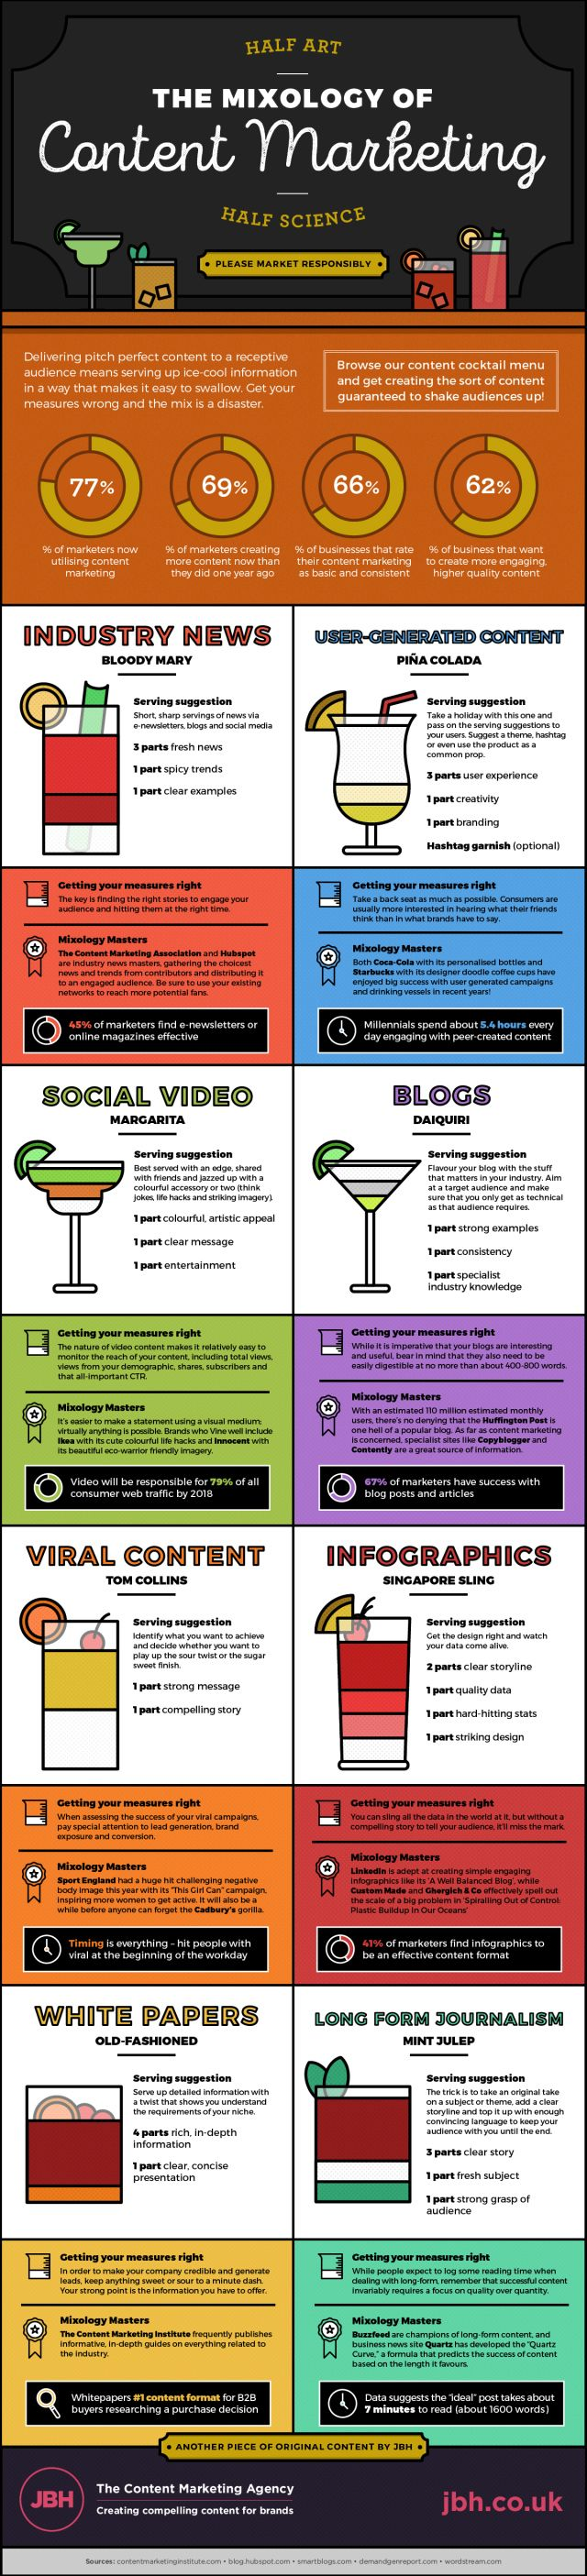 8 Types of Content Your Social Media Followers & Blog Readers Crave:  #Infographic #SocialMedia